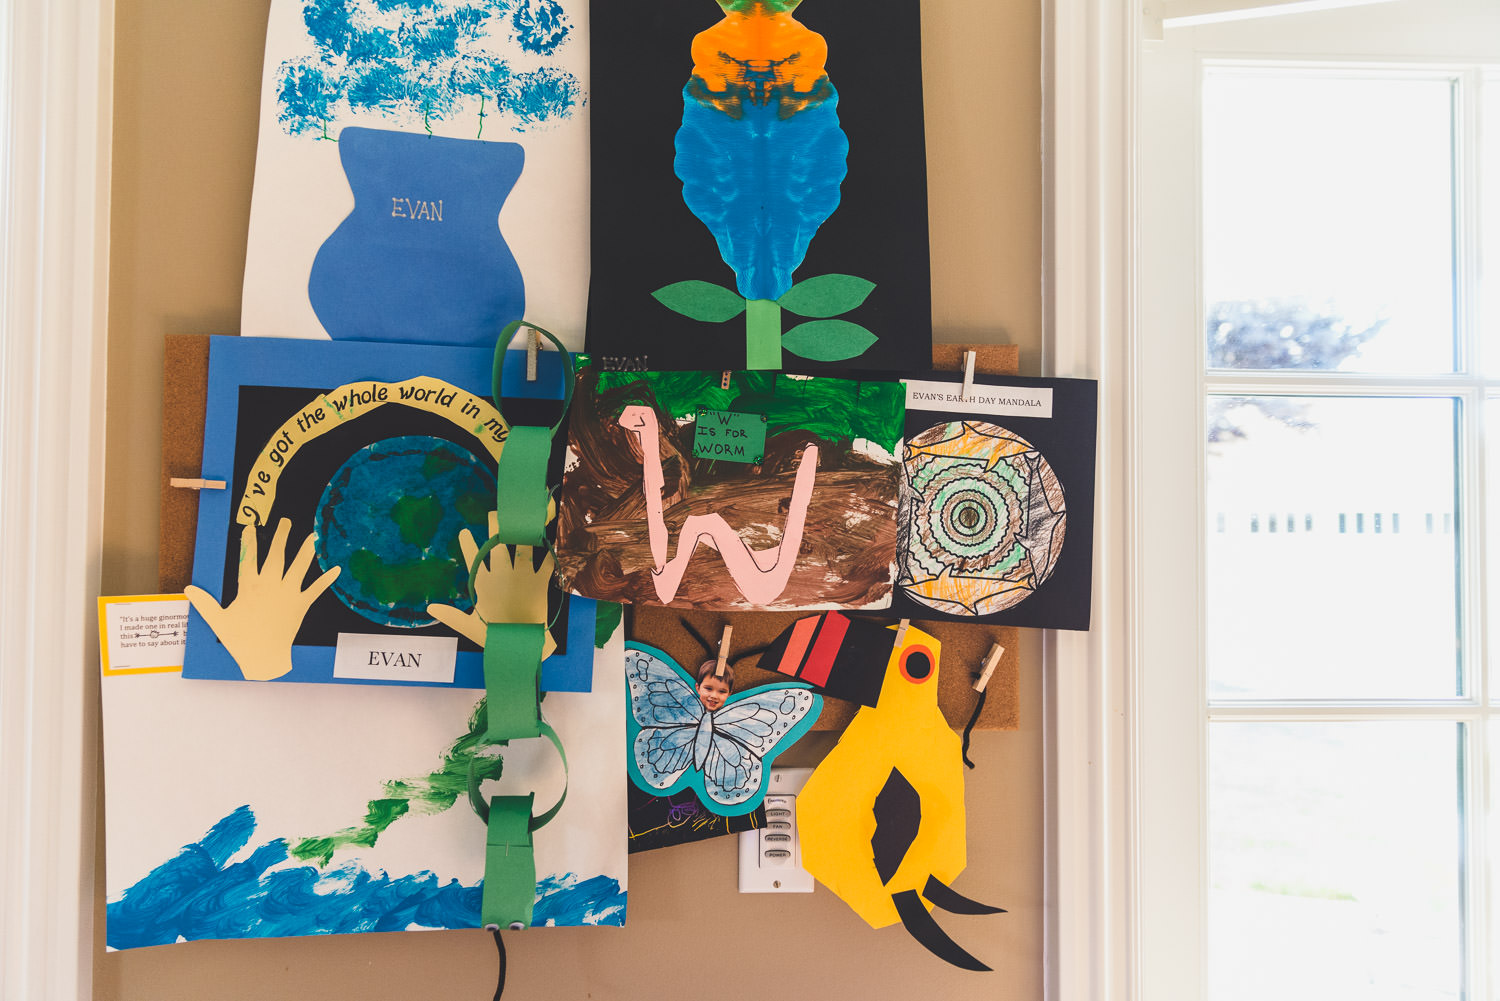 Kids' artwork hangs on the wall of a home.